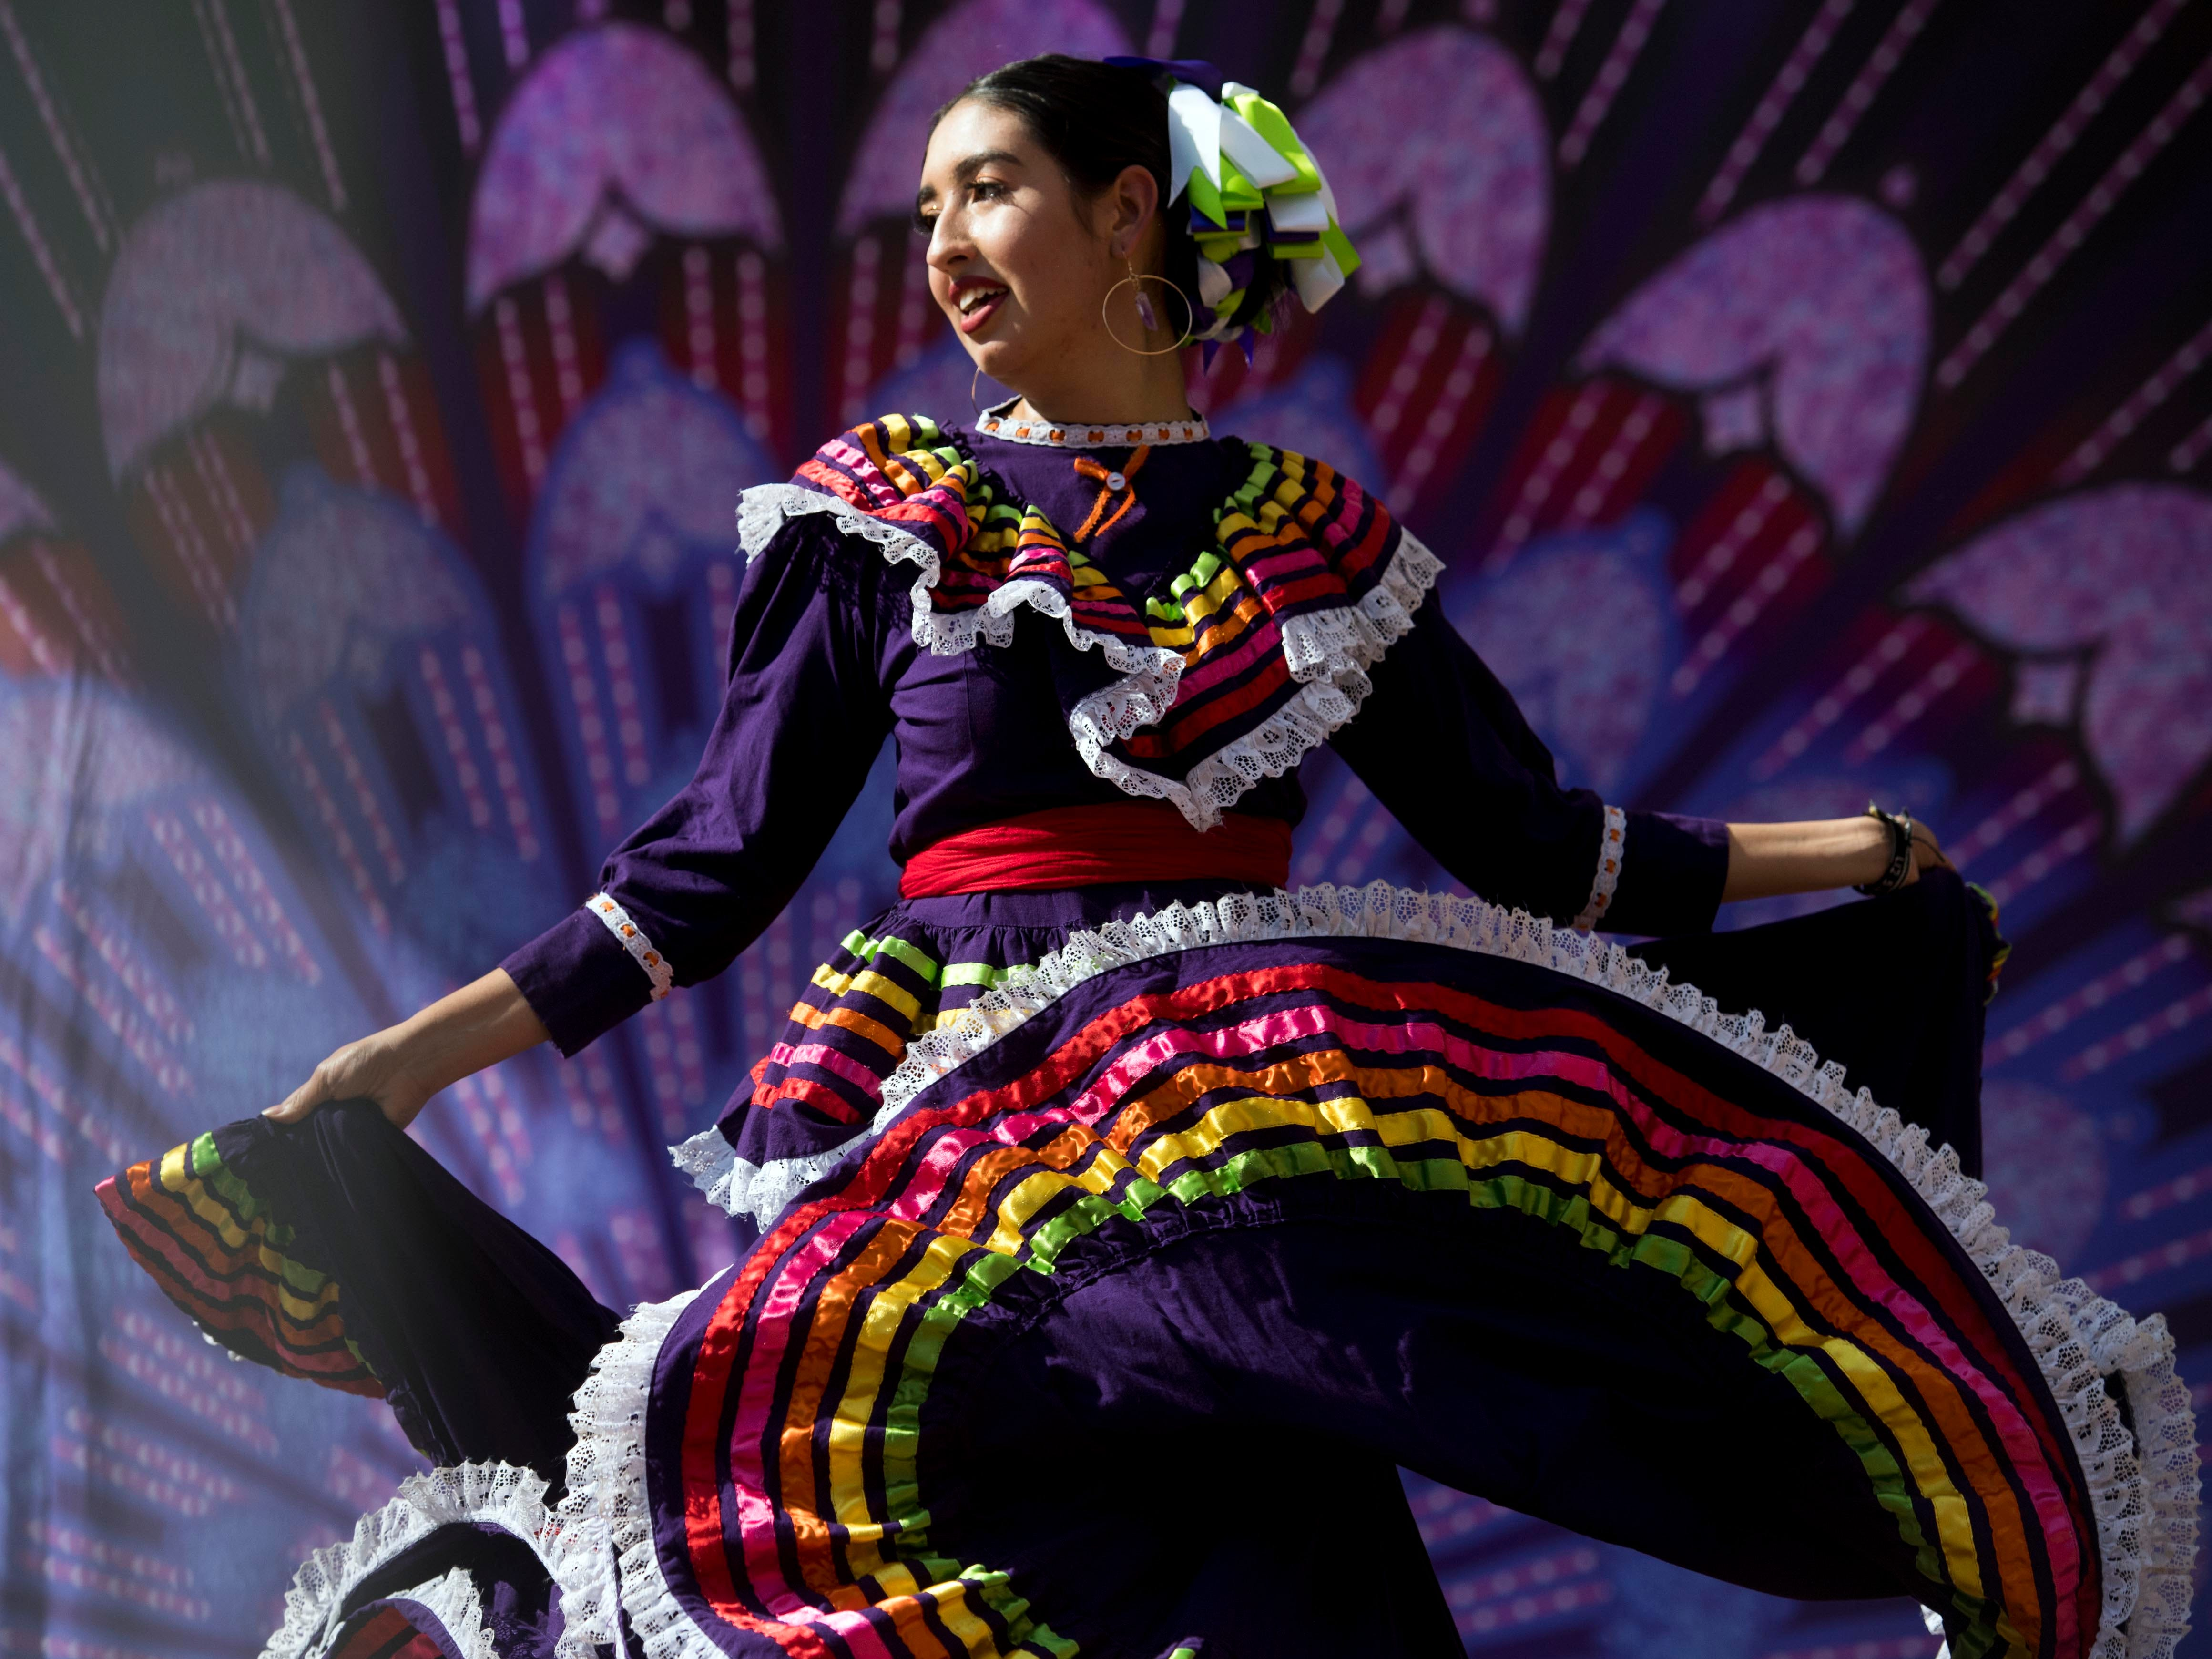 A dancer with Bellet folklórico Sol de Mexico performs on stage at the HoLa Hora Latina's annual HoLa Festival at Market Square on Sunday, September 30, 2018.